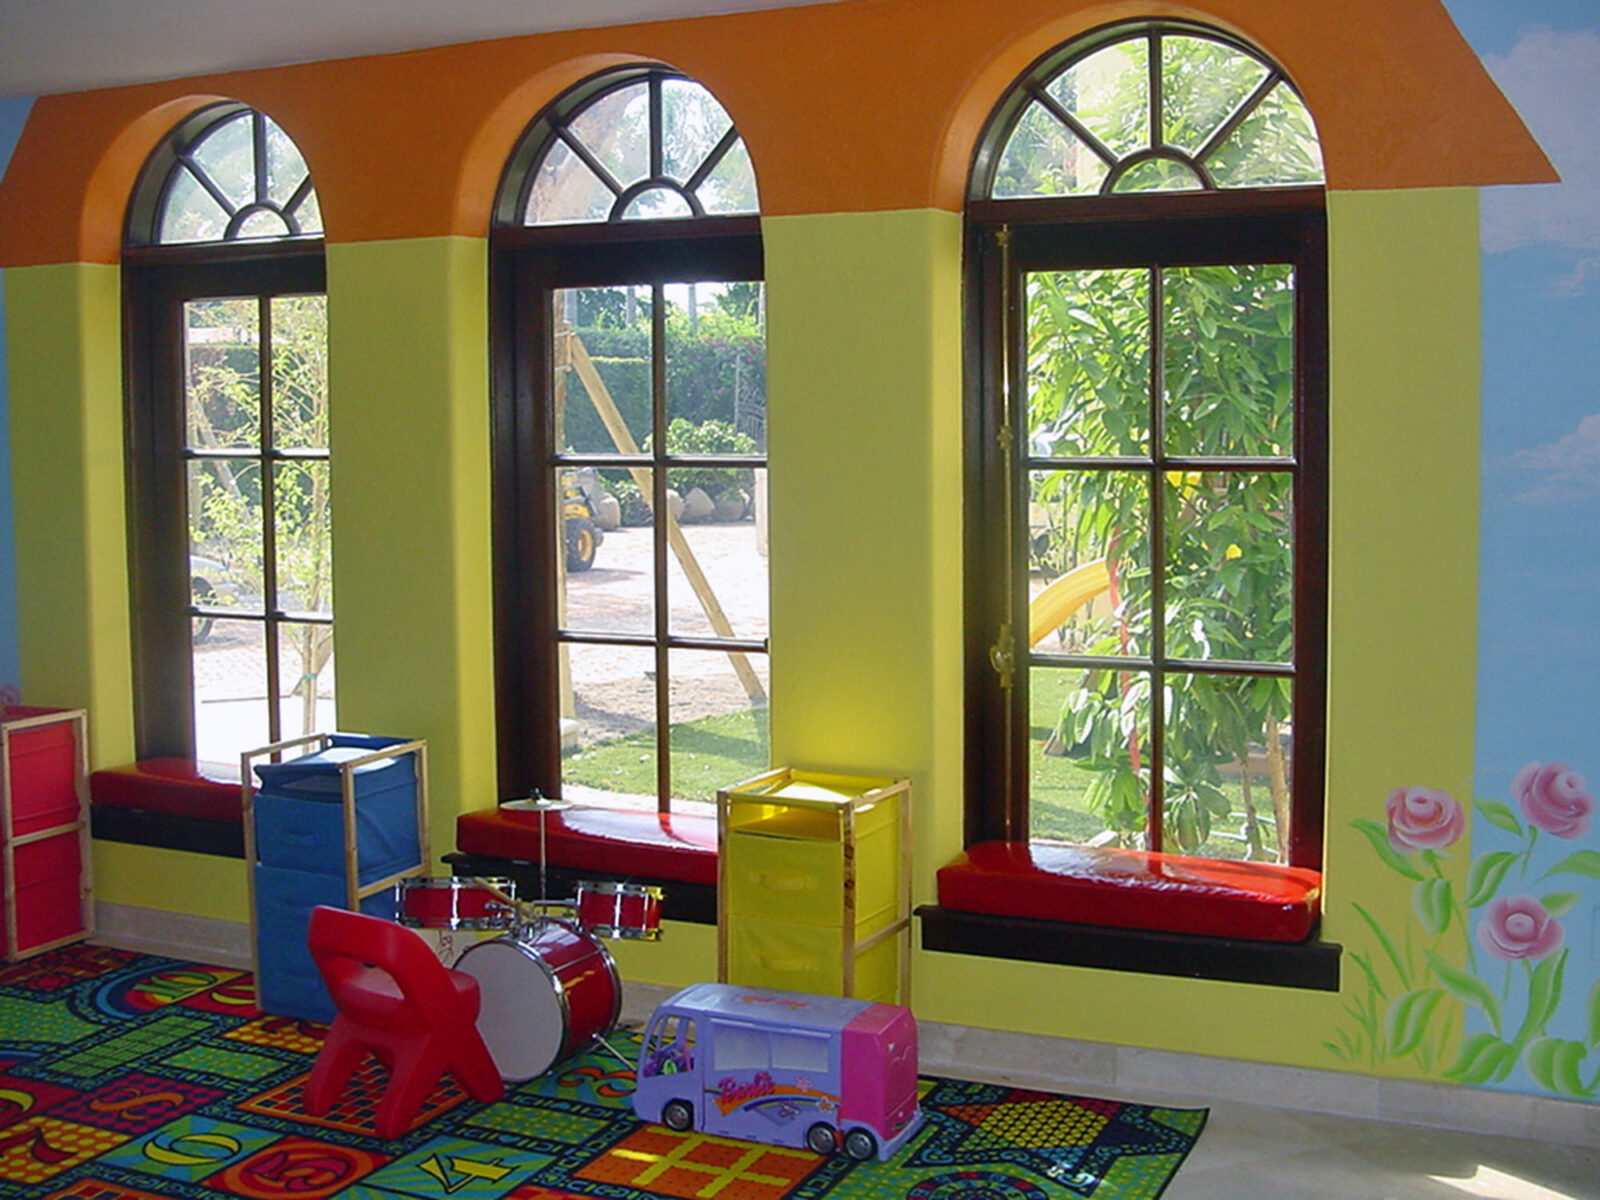 PINEBAY.PLAYROOMCASEMENTWINDOWS.